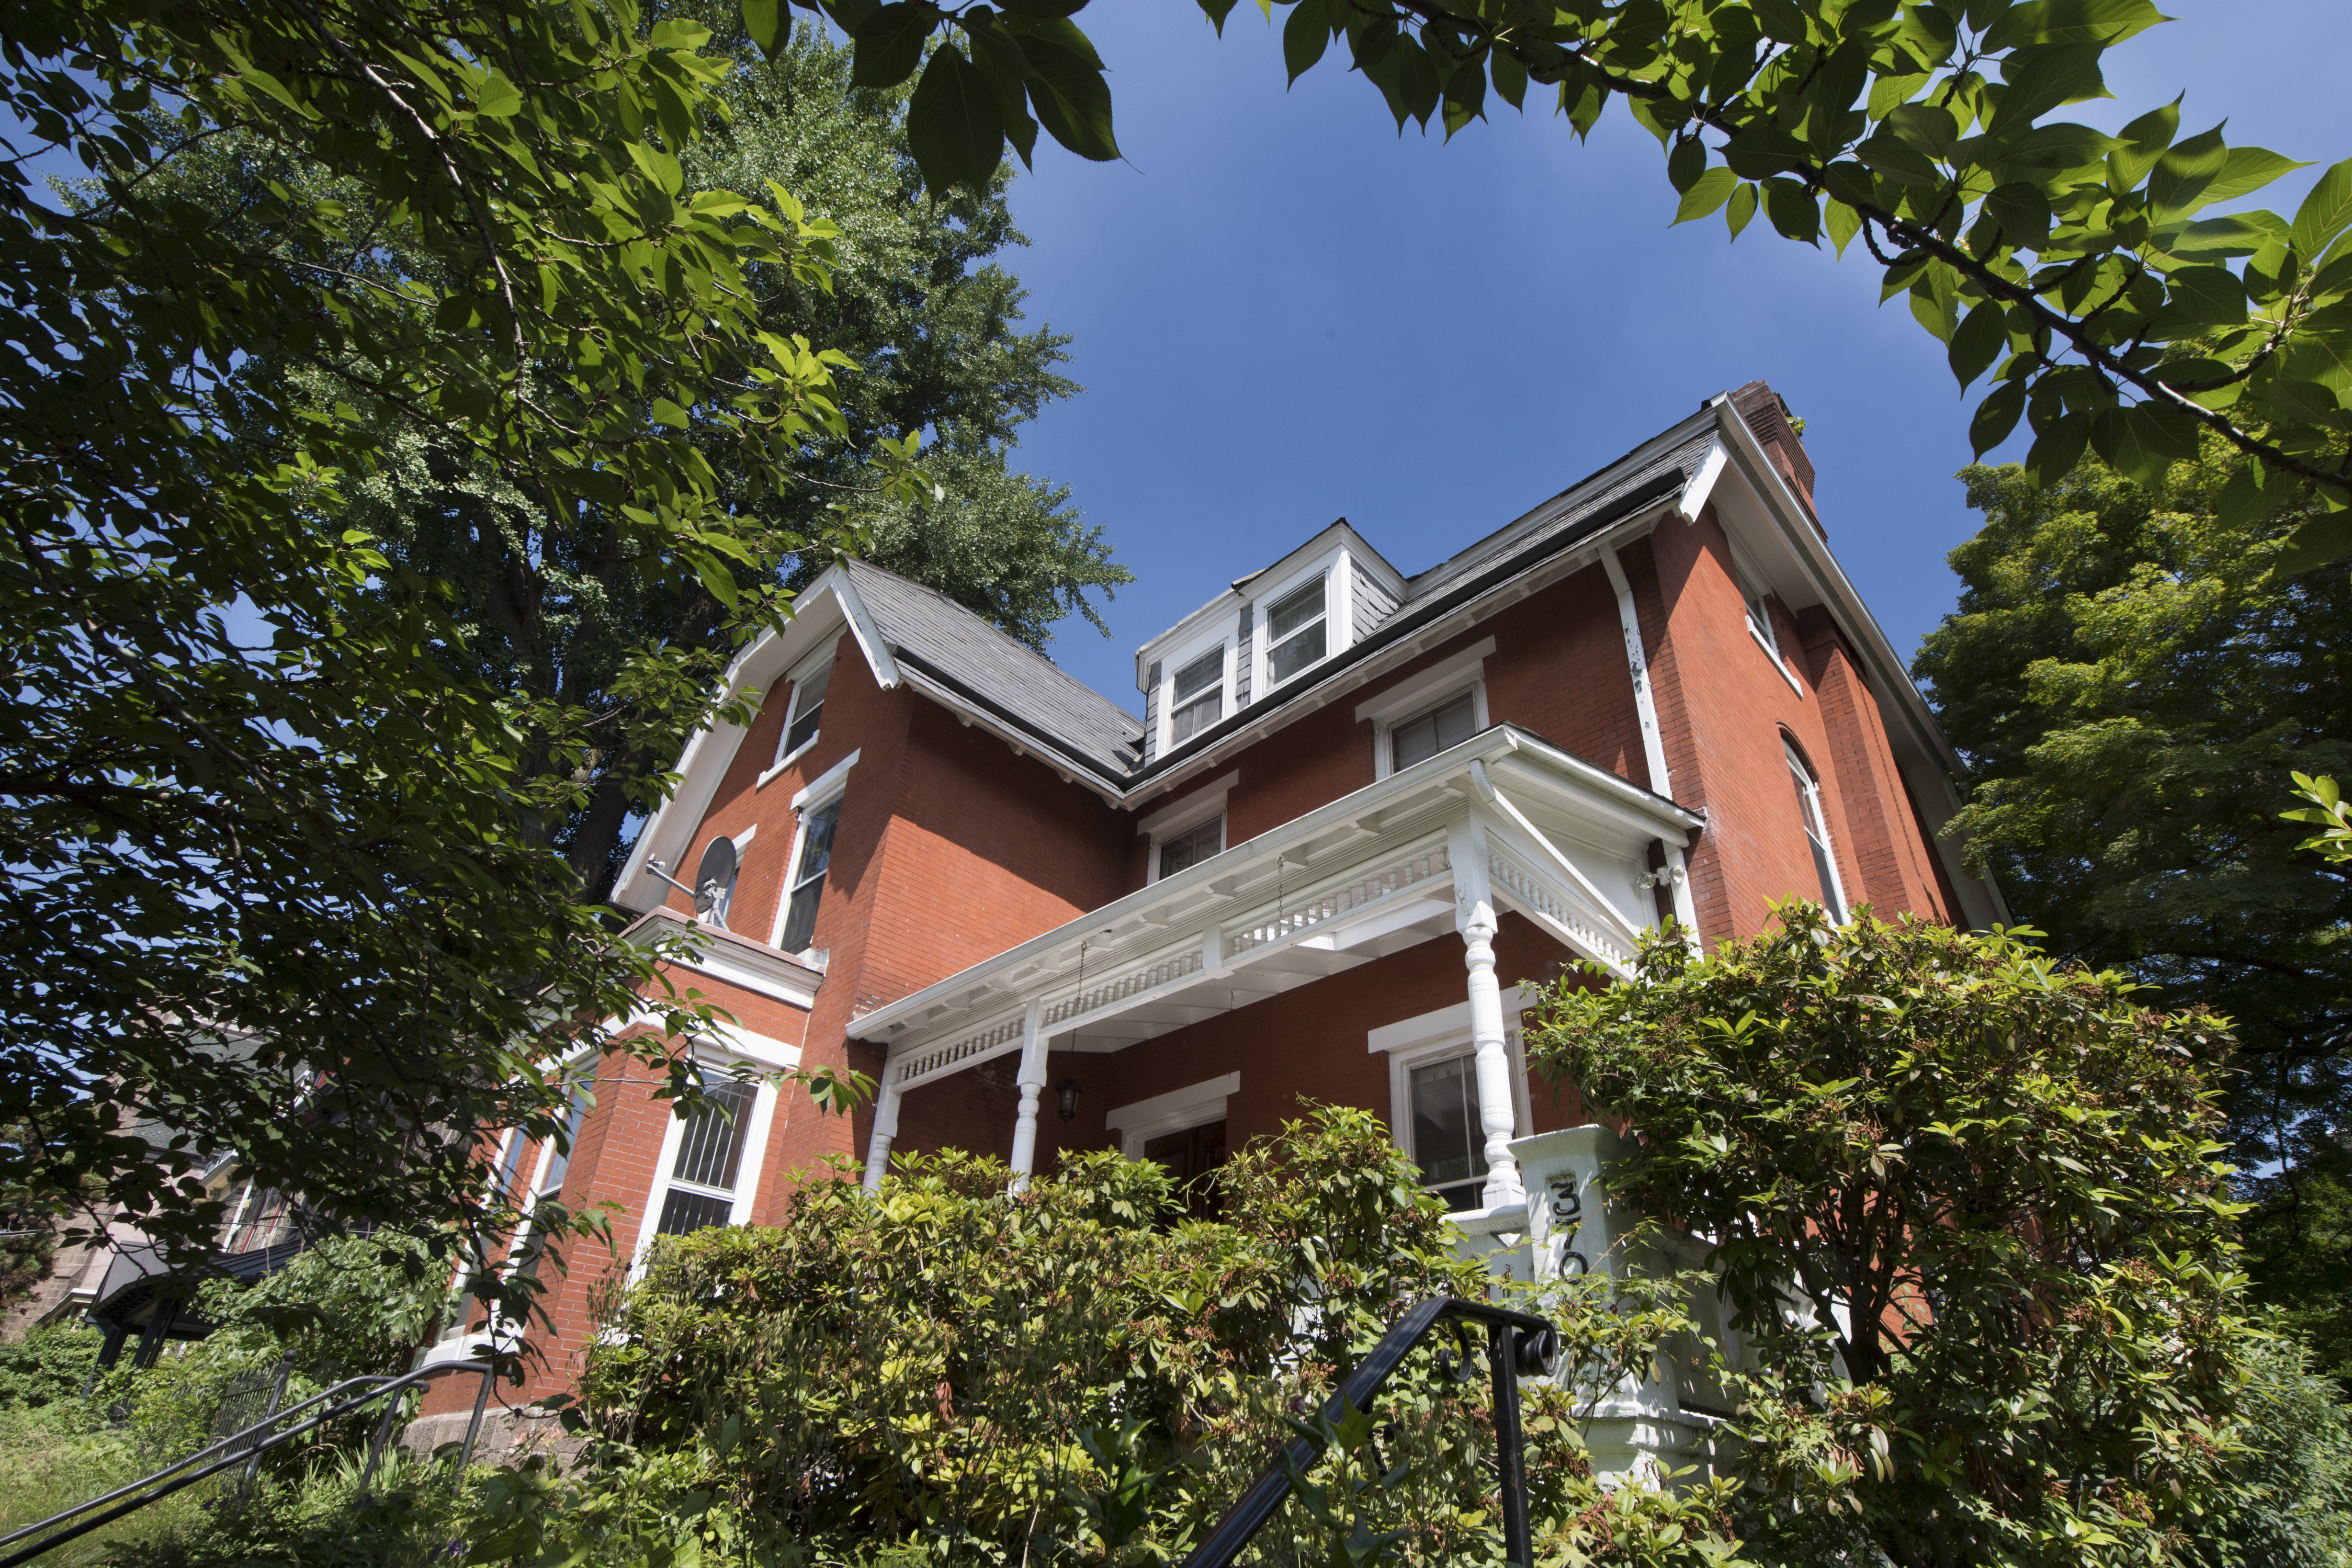 Monique Greenwood´s newly purchased bed and breakfast home is shown in West Philadelphia, Pa. Wednesday, June 20, 2018. JOSE F. MORENO / Staff Photographer